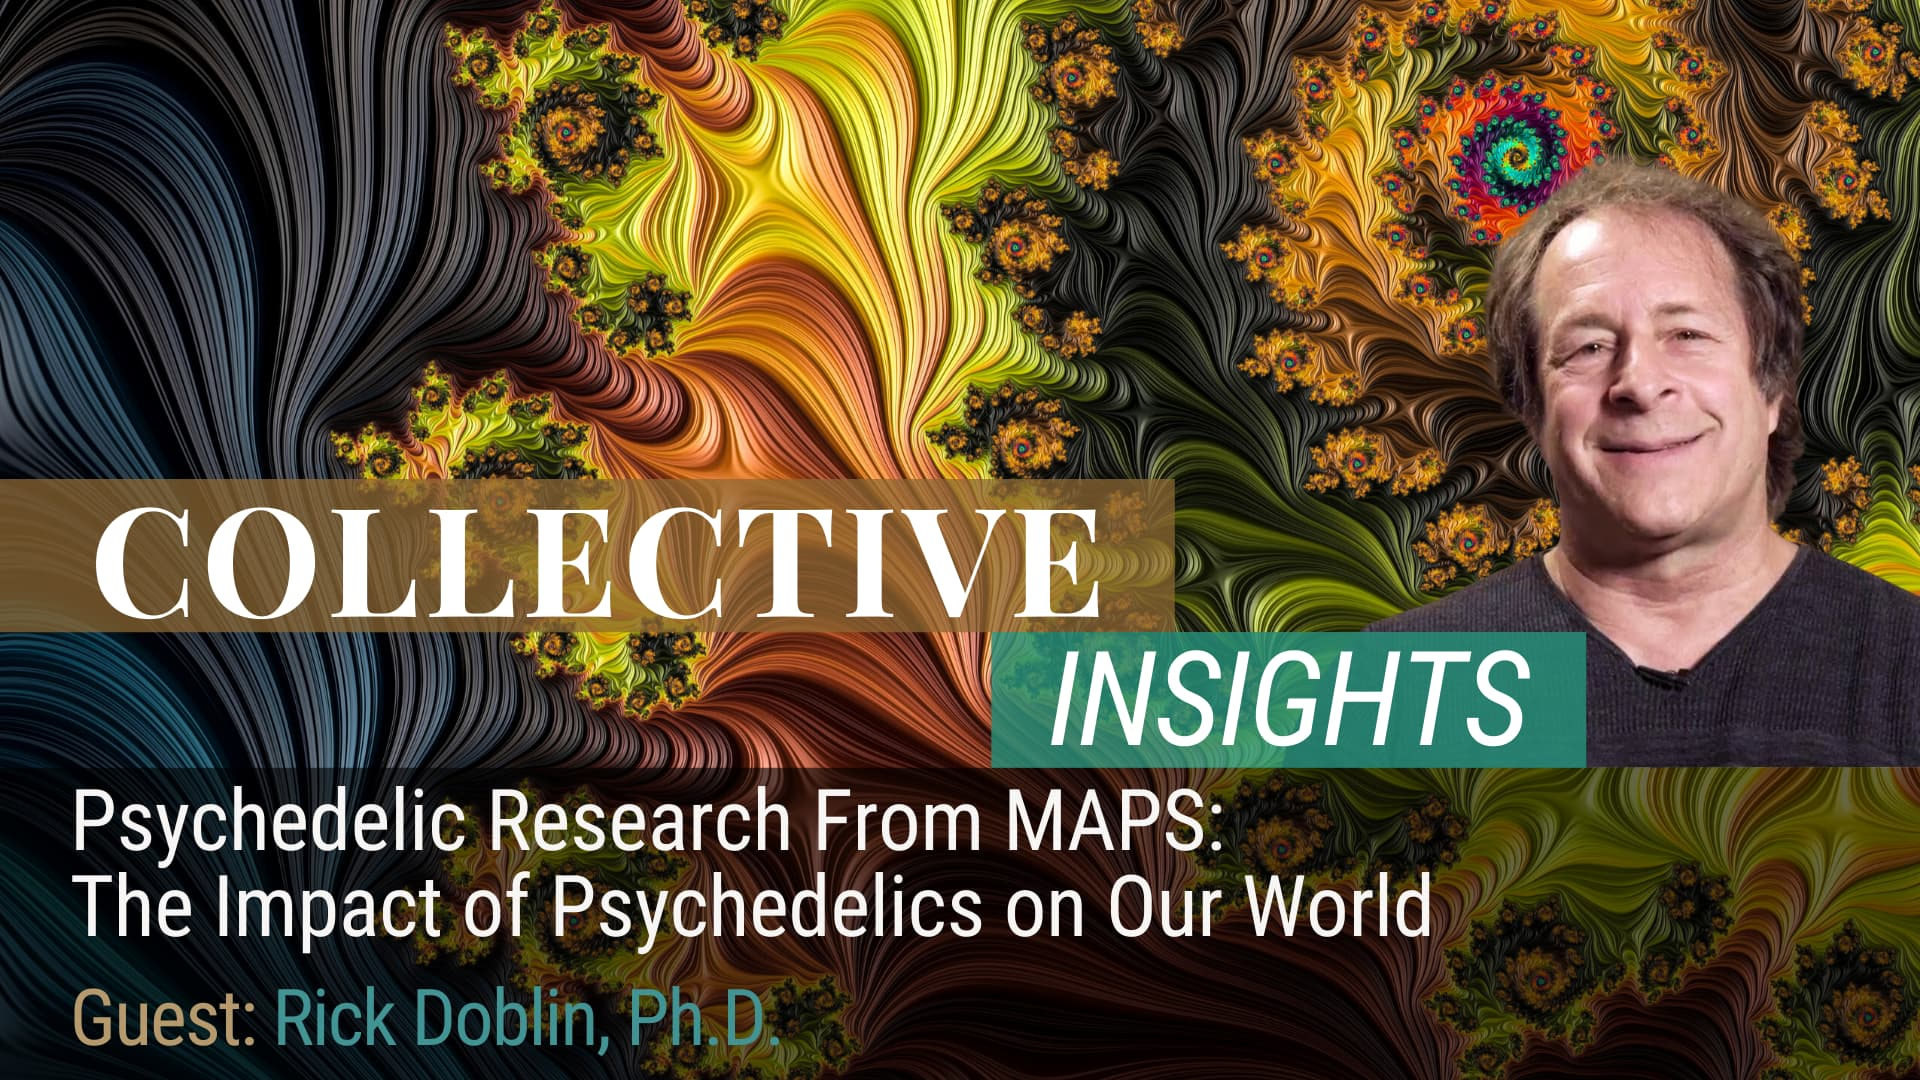 Psychedelic Research From MAPS: The Impact of Psychedelics on Our World